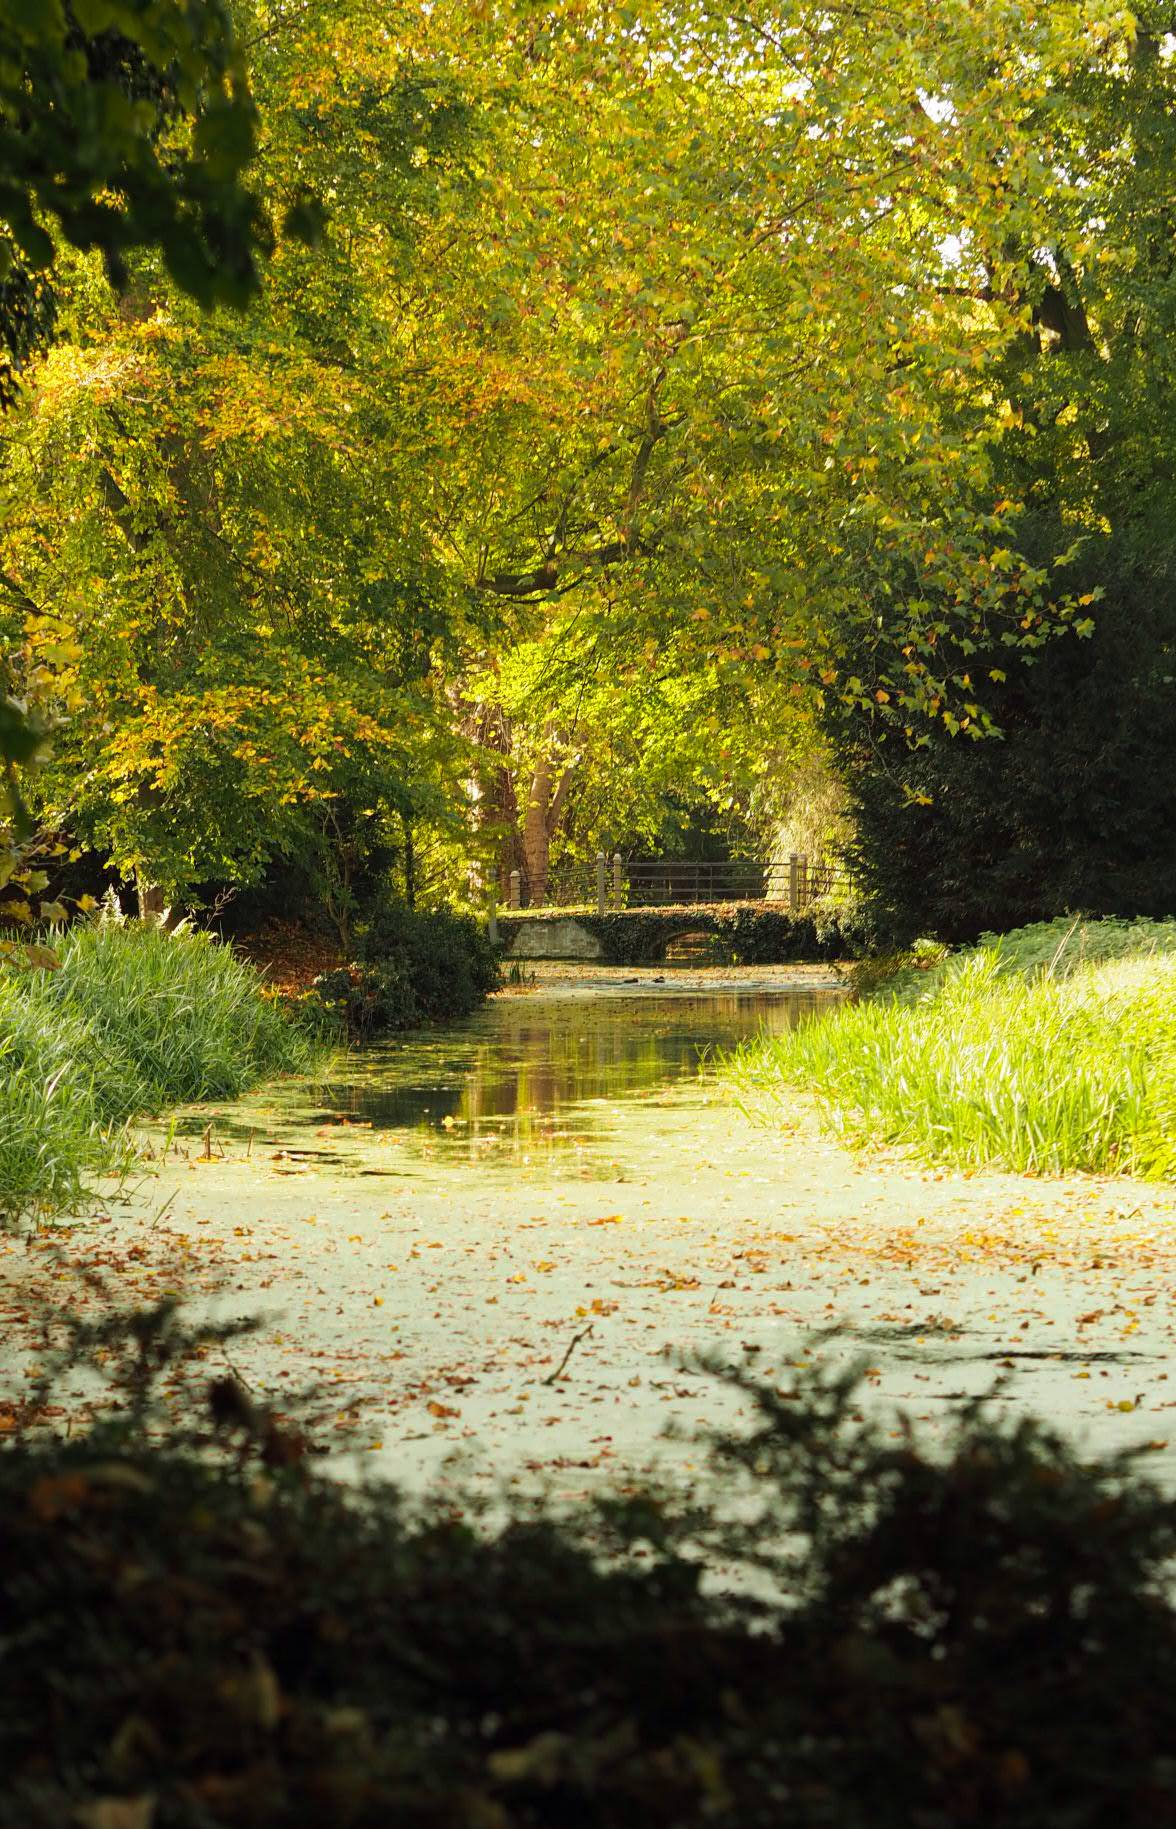 Anglesey abbey, National trust, things to do in cambridge